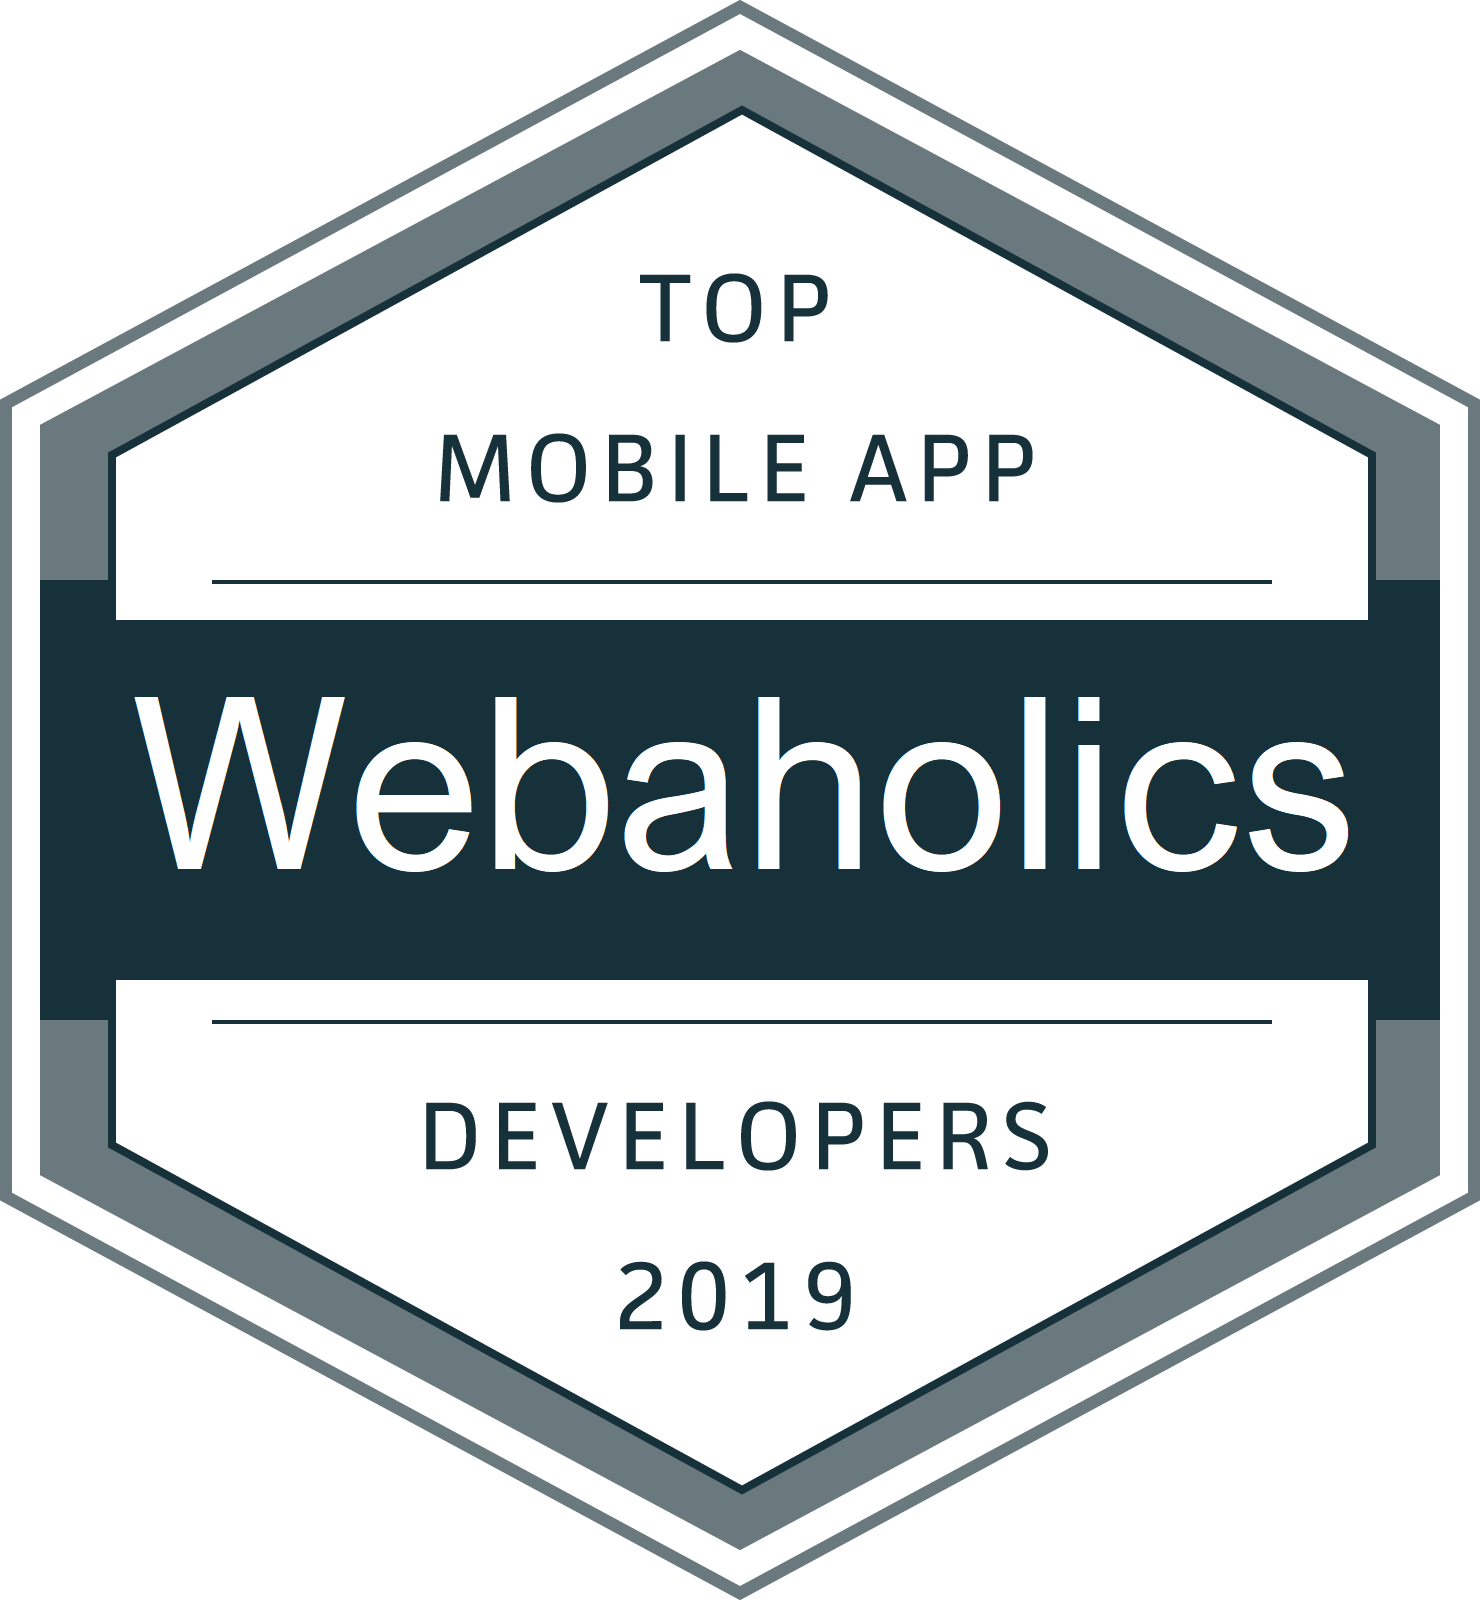 Top Mobile Developers Award